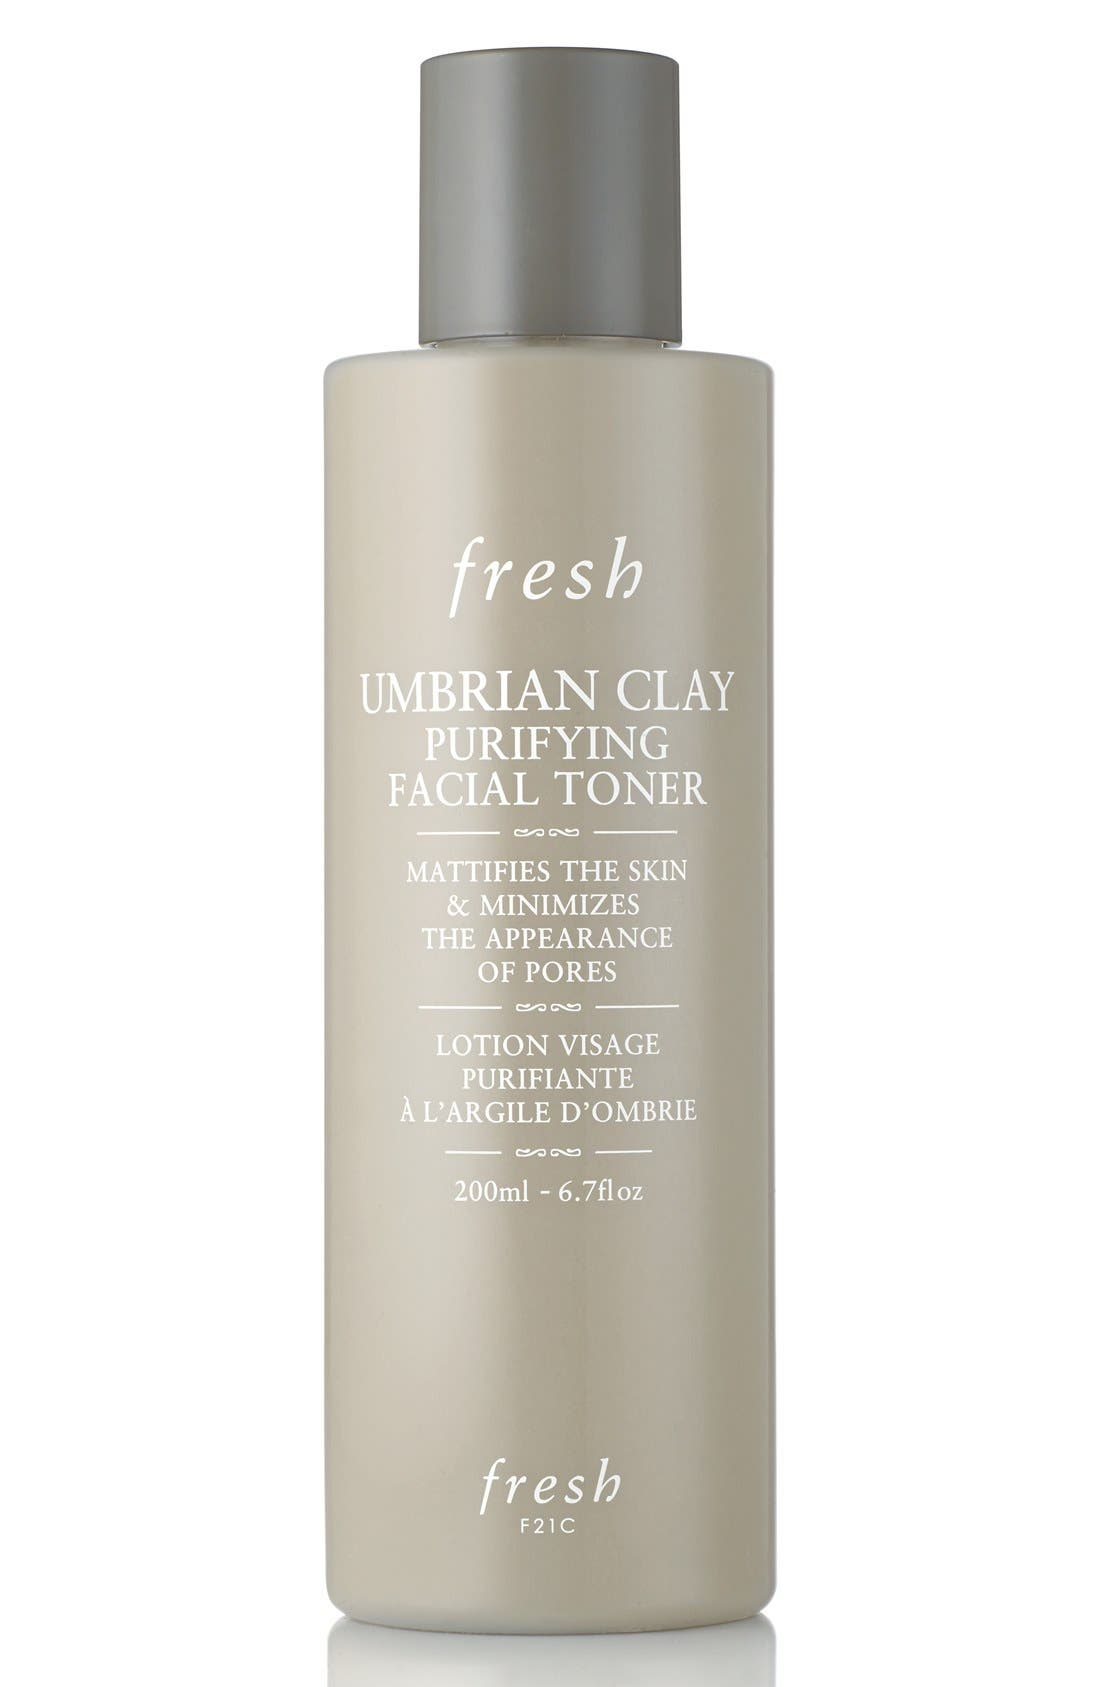 Fresh® Umbrian Clay Purifying Facial Toner